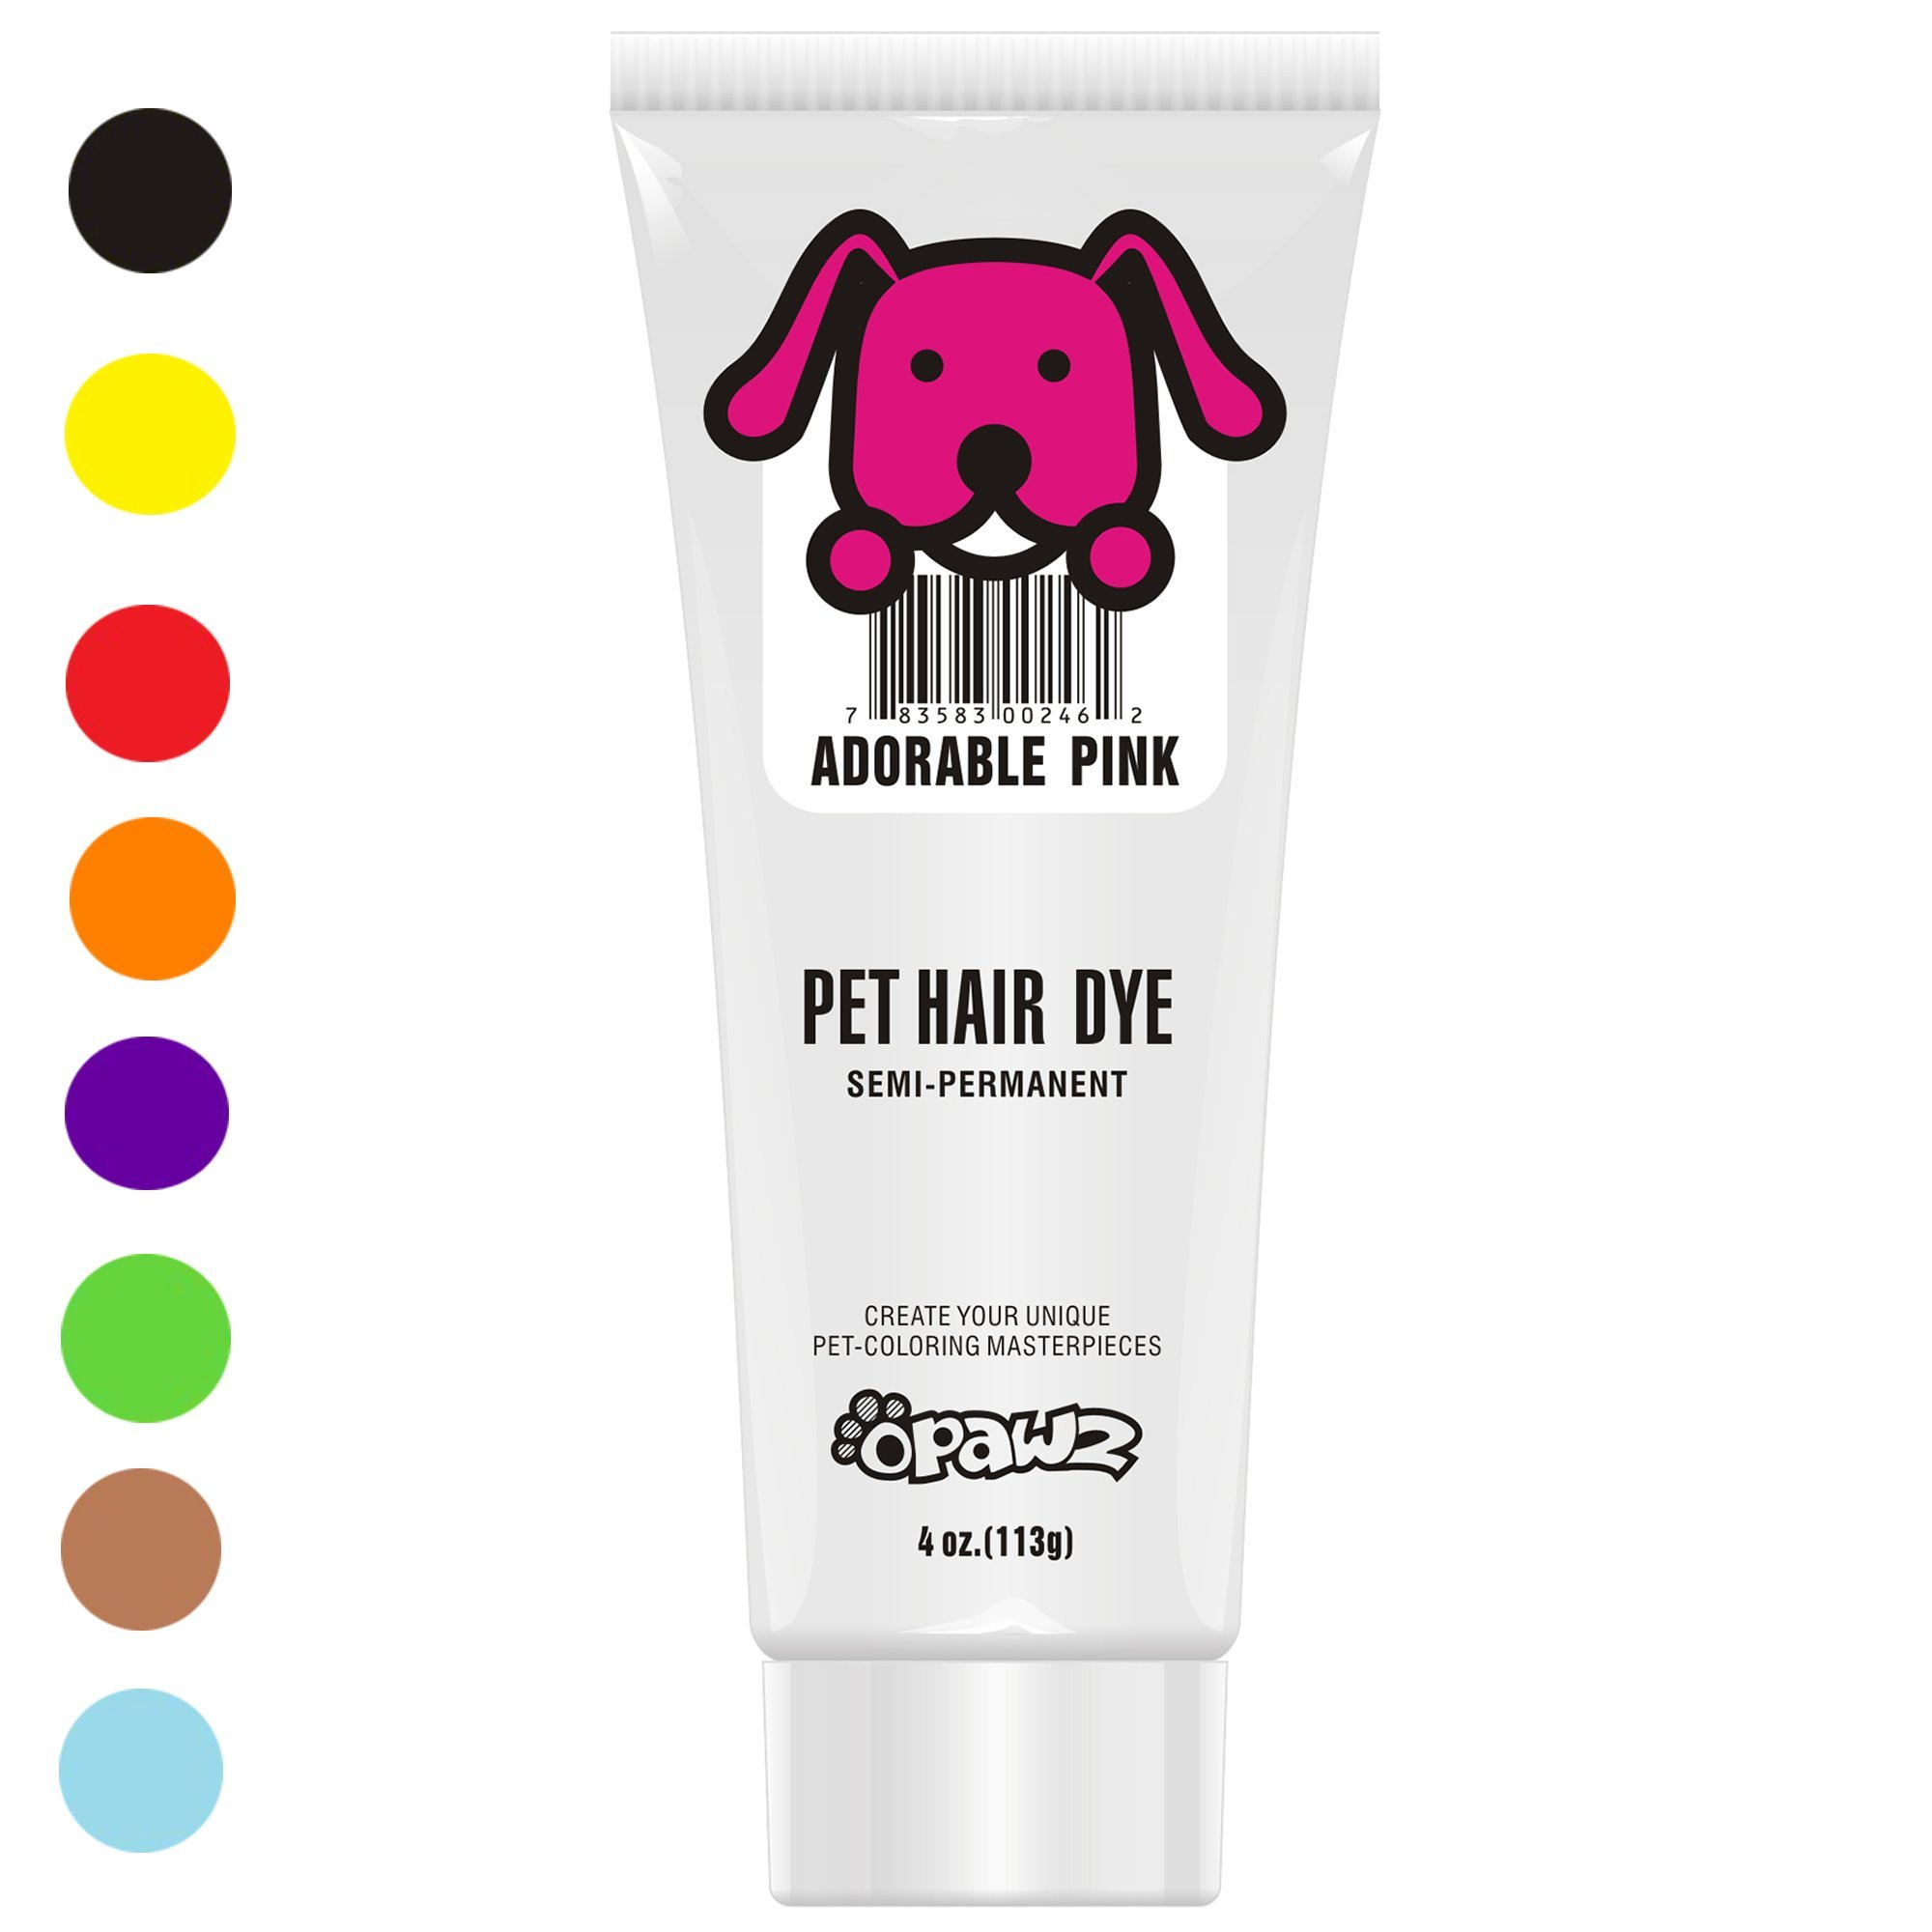 Owpawz DOG HAIR DYE GEL - New Bright, Fun Shade, Semi-permanent, completely non-toxic and safe (PINK)